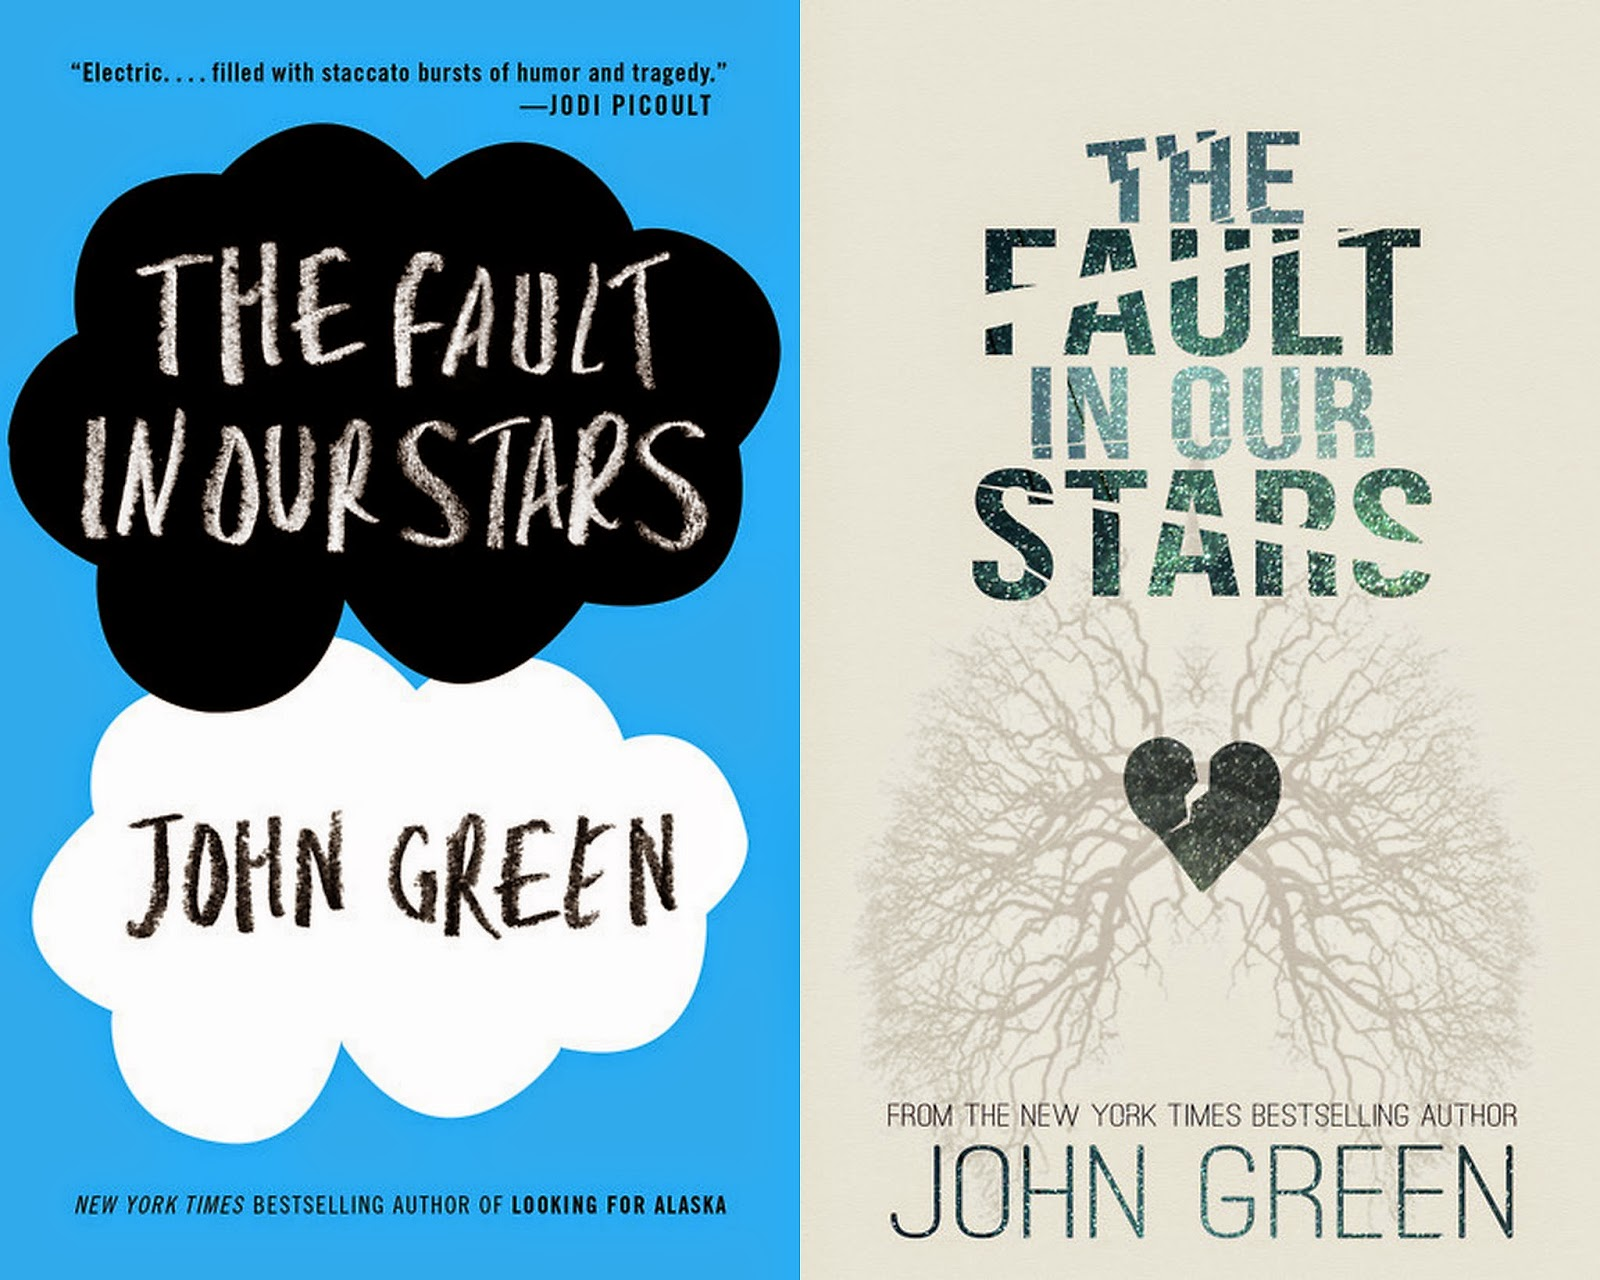 book review the fault in our The fault in our stars is a fictional book intended for young adults published in 2012 february 1, 2012, the film rights to the novel were optioned to fox 2000.